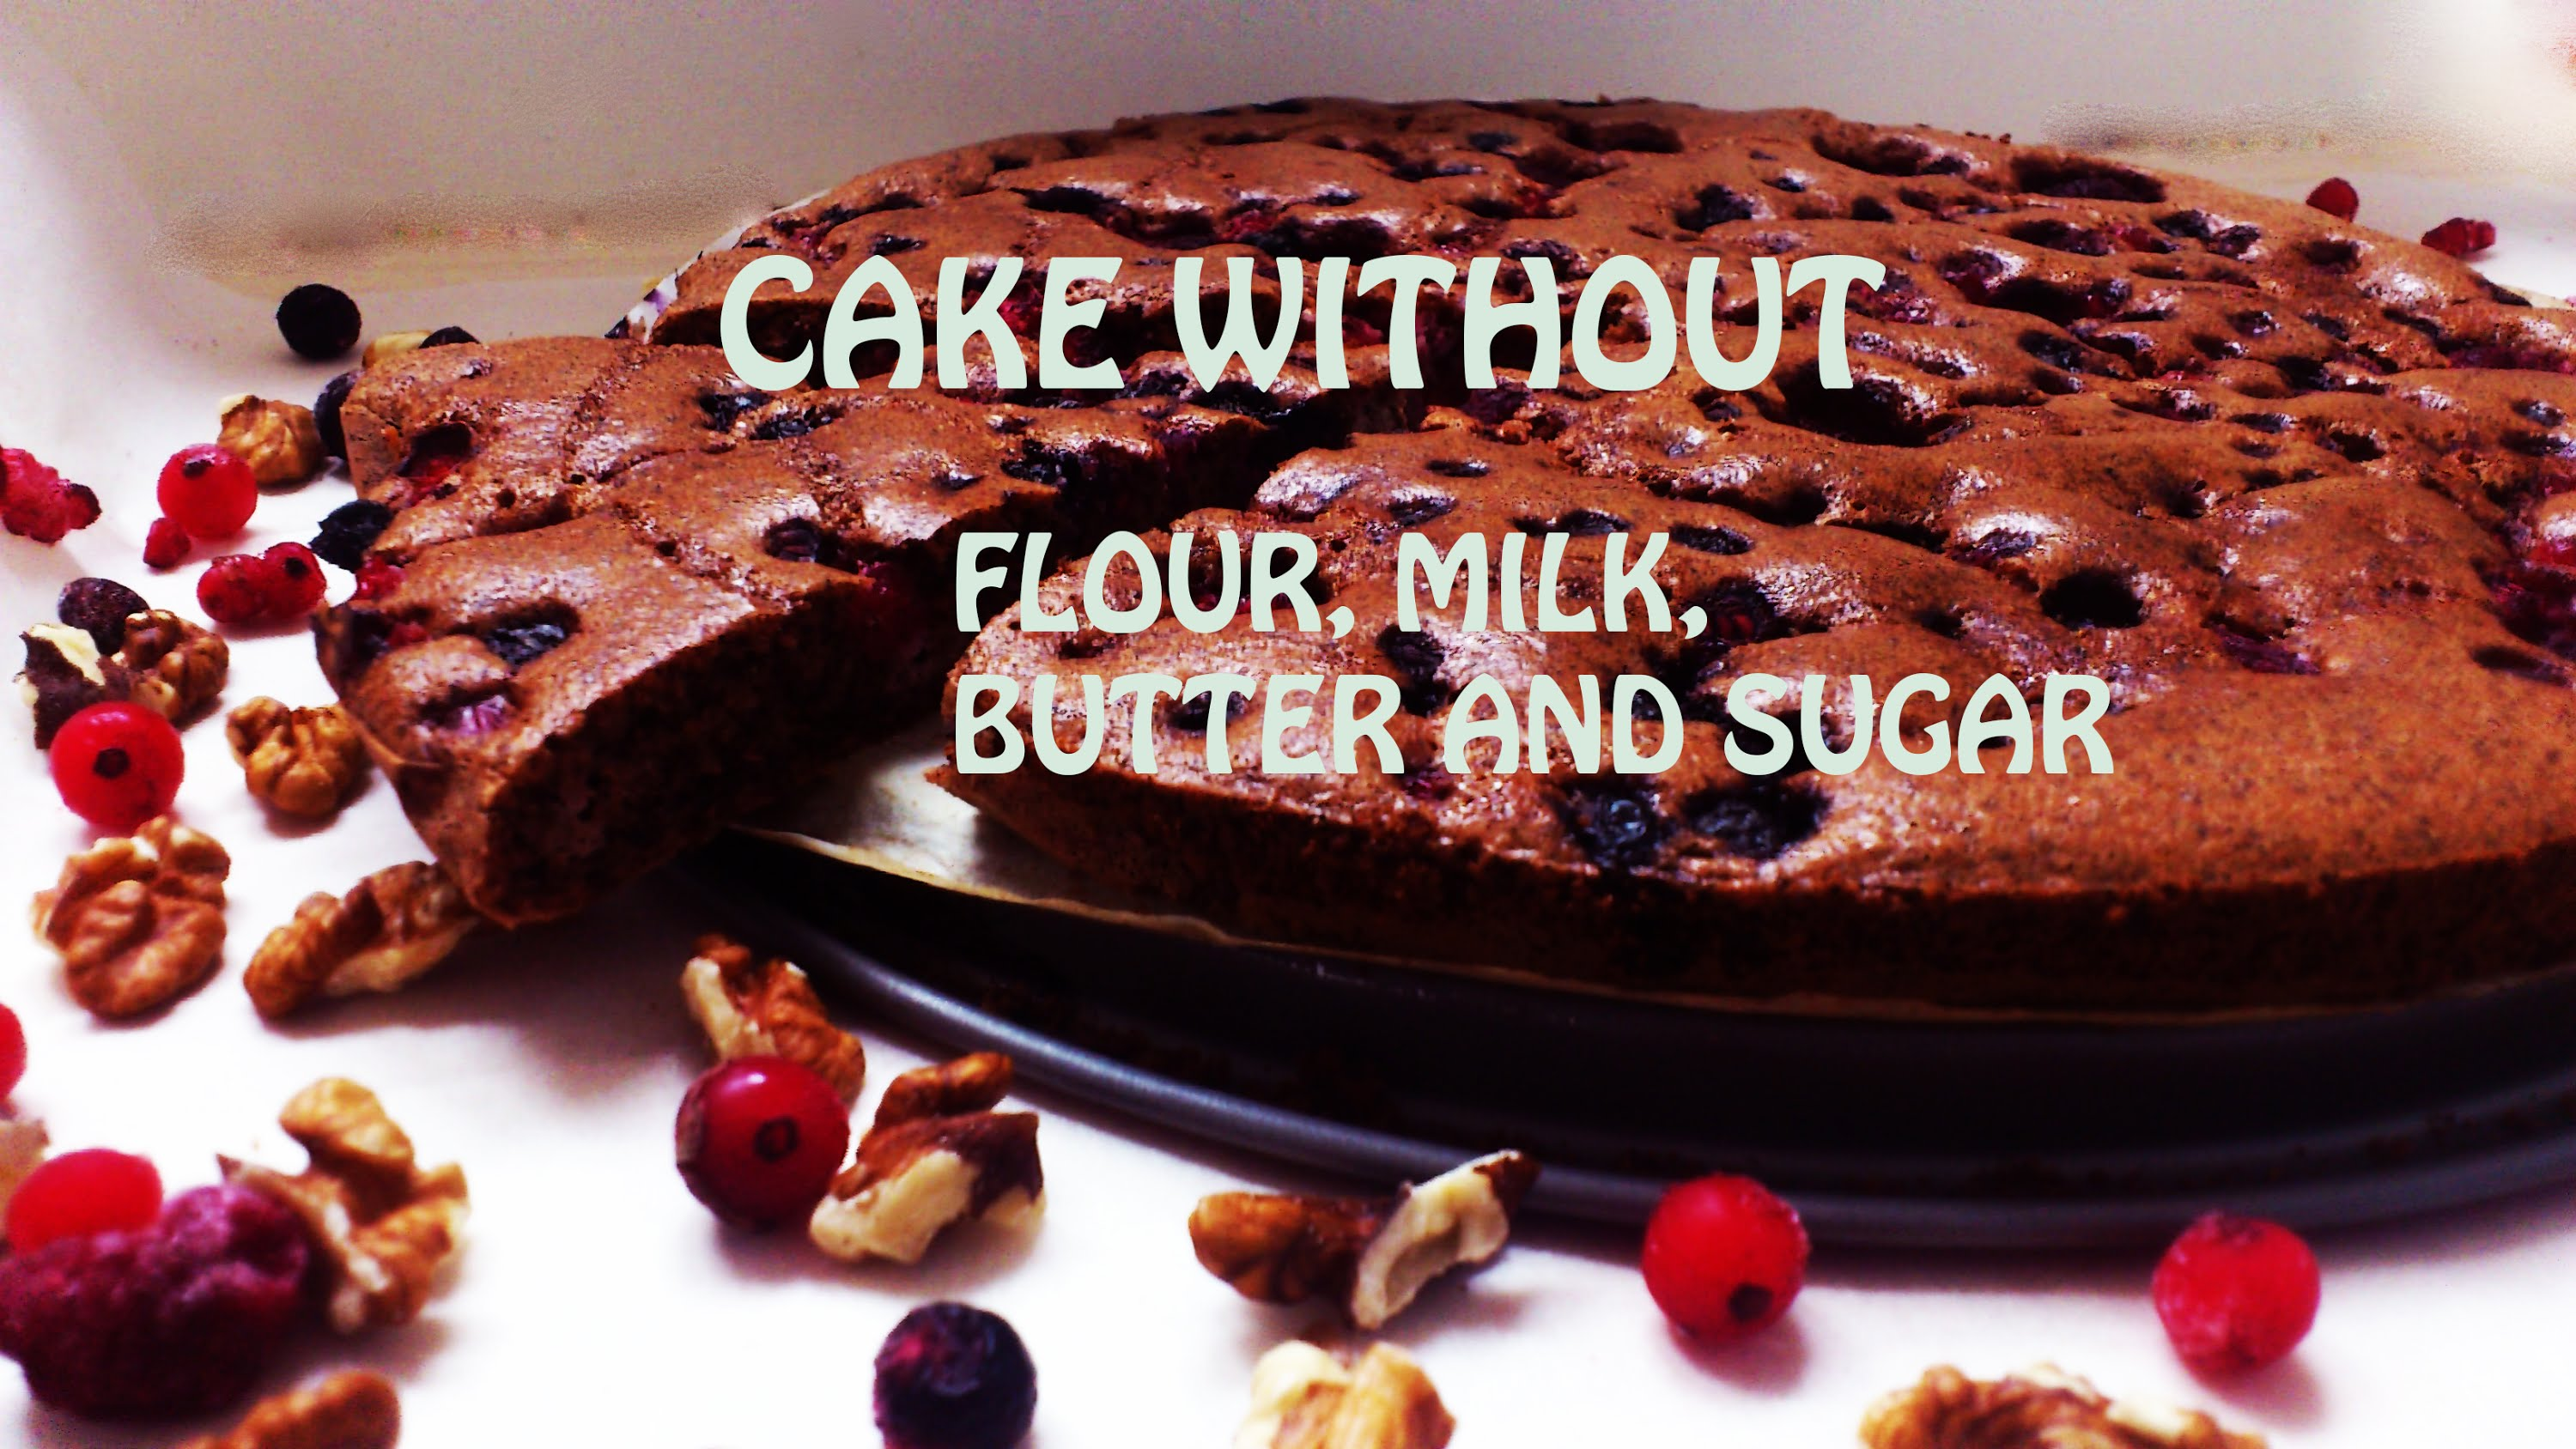 HEALTHY CAKE without flourbutter milk and sugar KeepRecipes